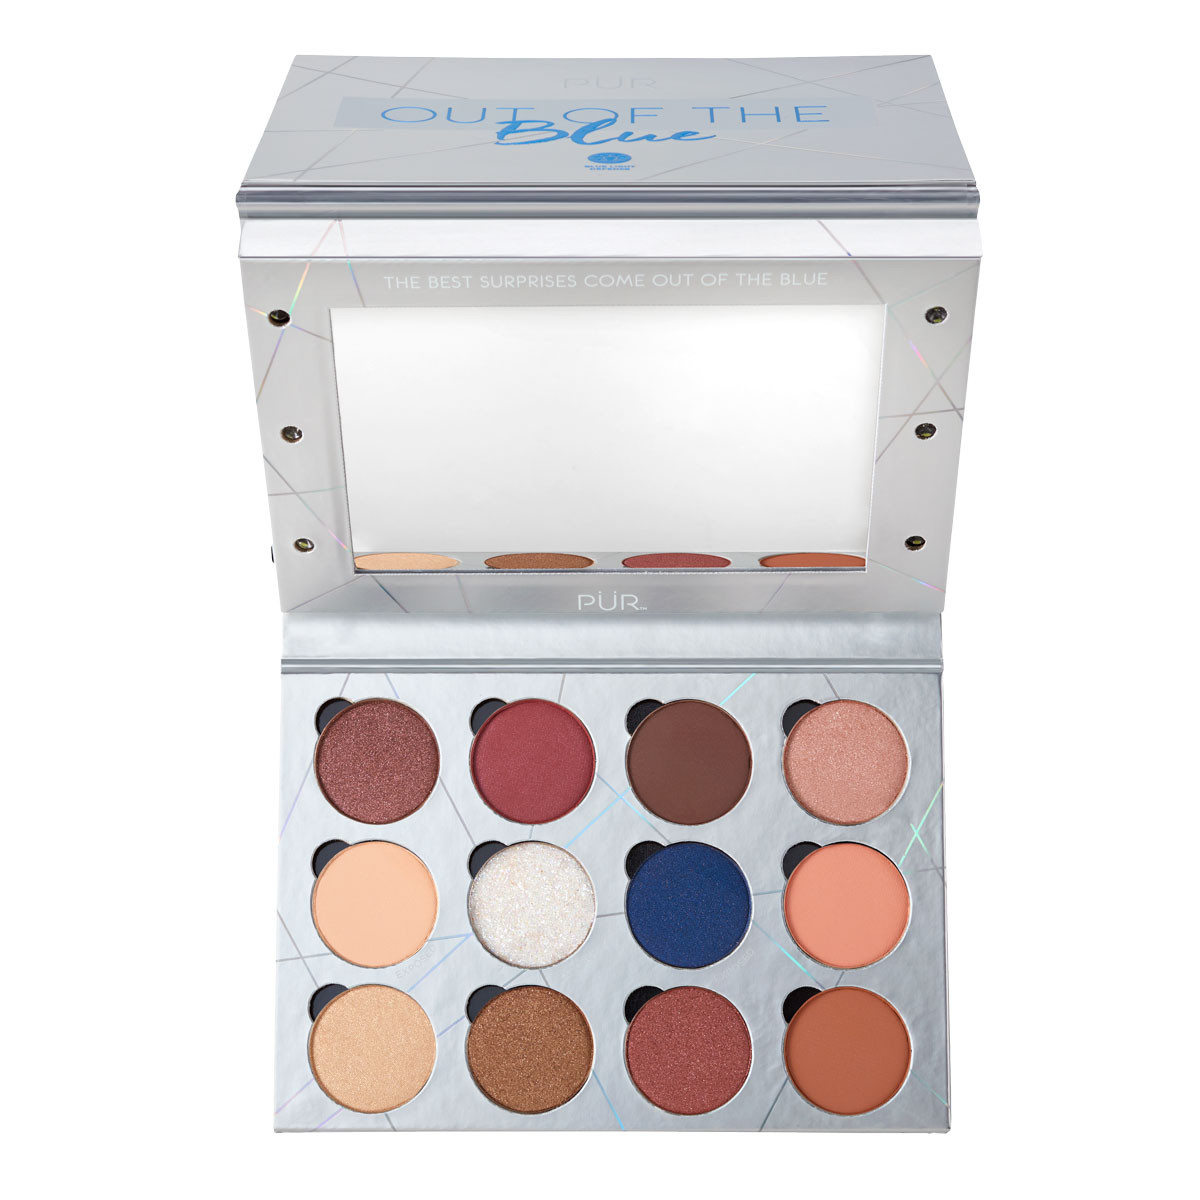 null - Out of the Blue Light Up Vanity Eyeshadow Palette